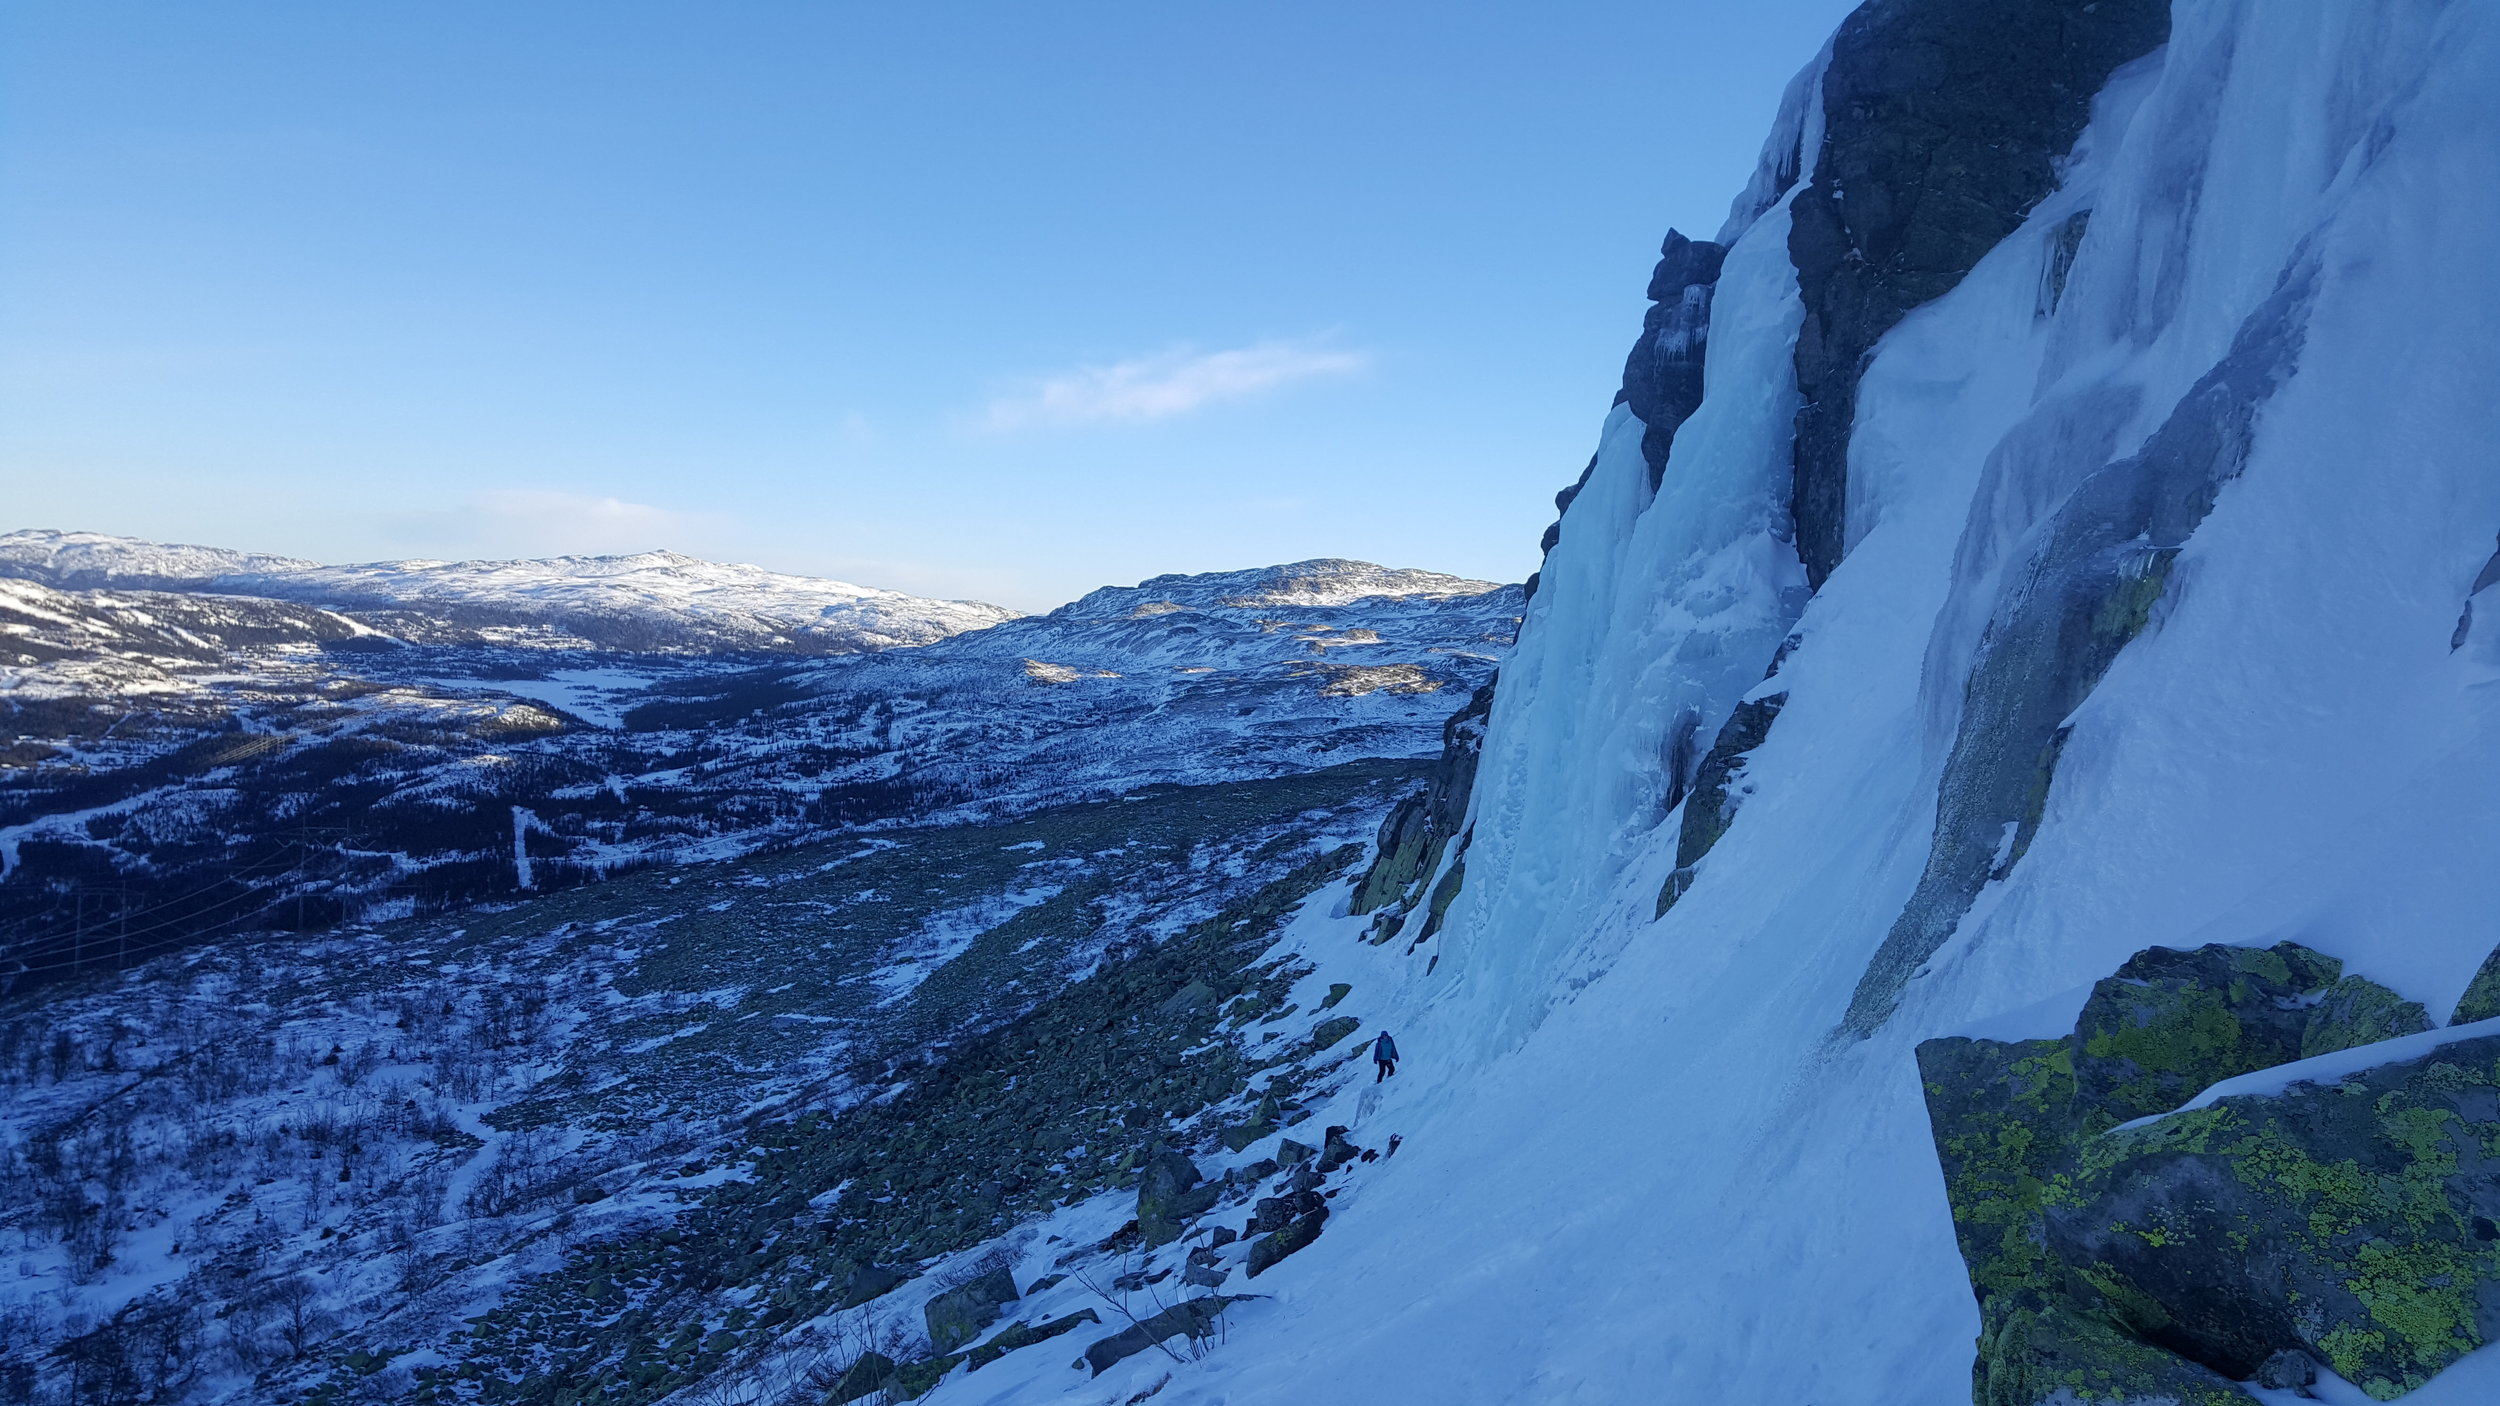 Spot the climber? Chilly day at the Gausta area, which is home to some great single pitch ice falls.